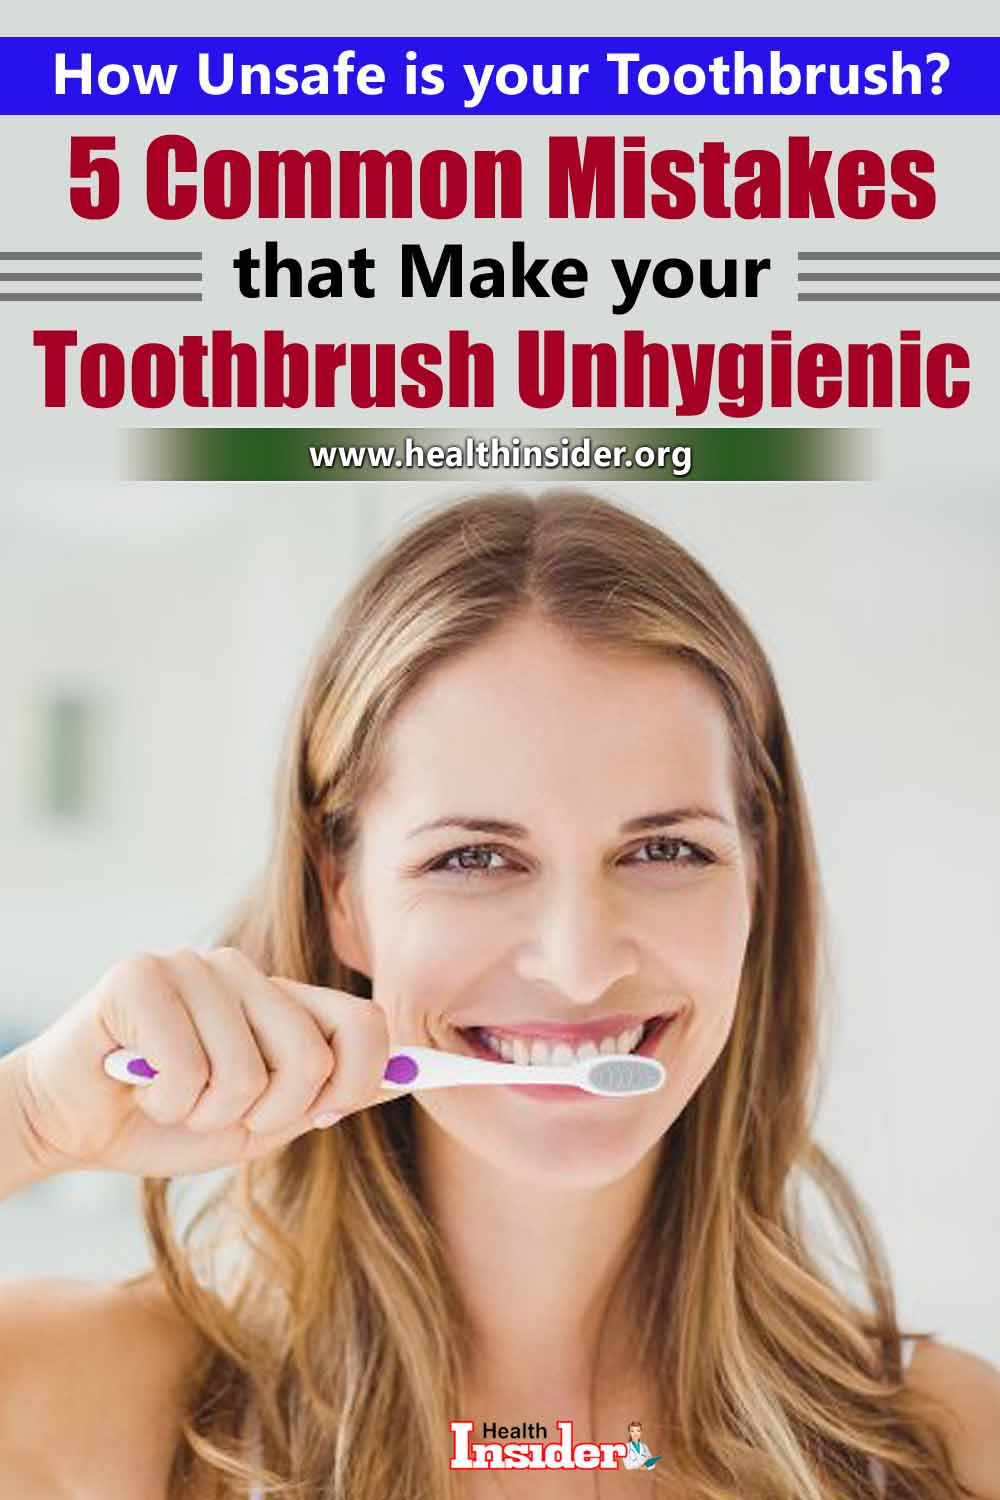 How Unsafe is your Toothbrush? We've compiled the five basic hygiene mistakes that we all commonly make while handling, storing and using our toothbrushes. #toothacherelief #toothacherelieffast #teethwhitening